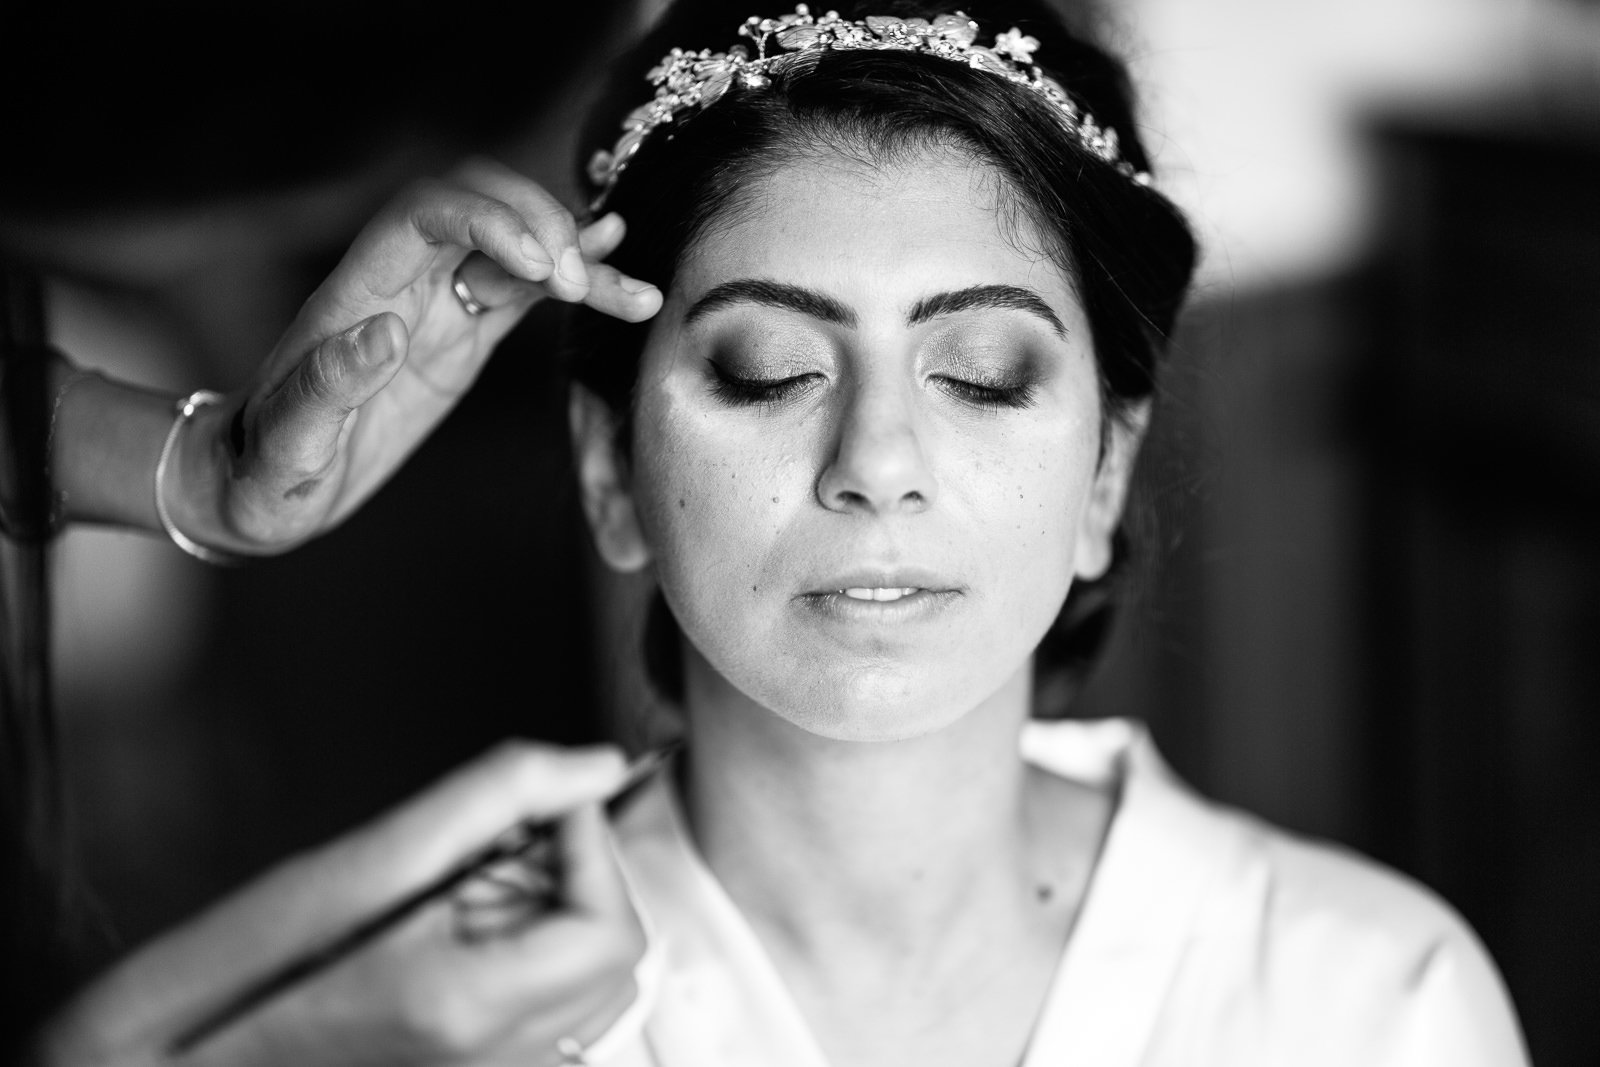 Bride getting her makeup applied